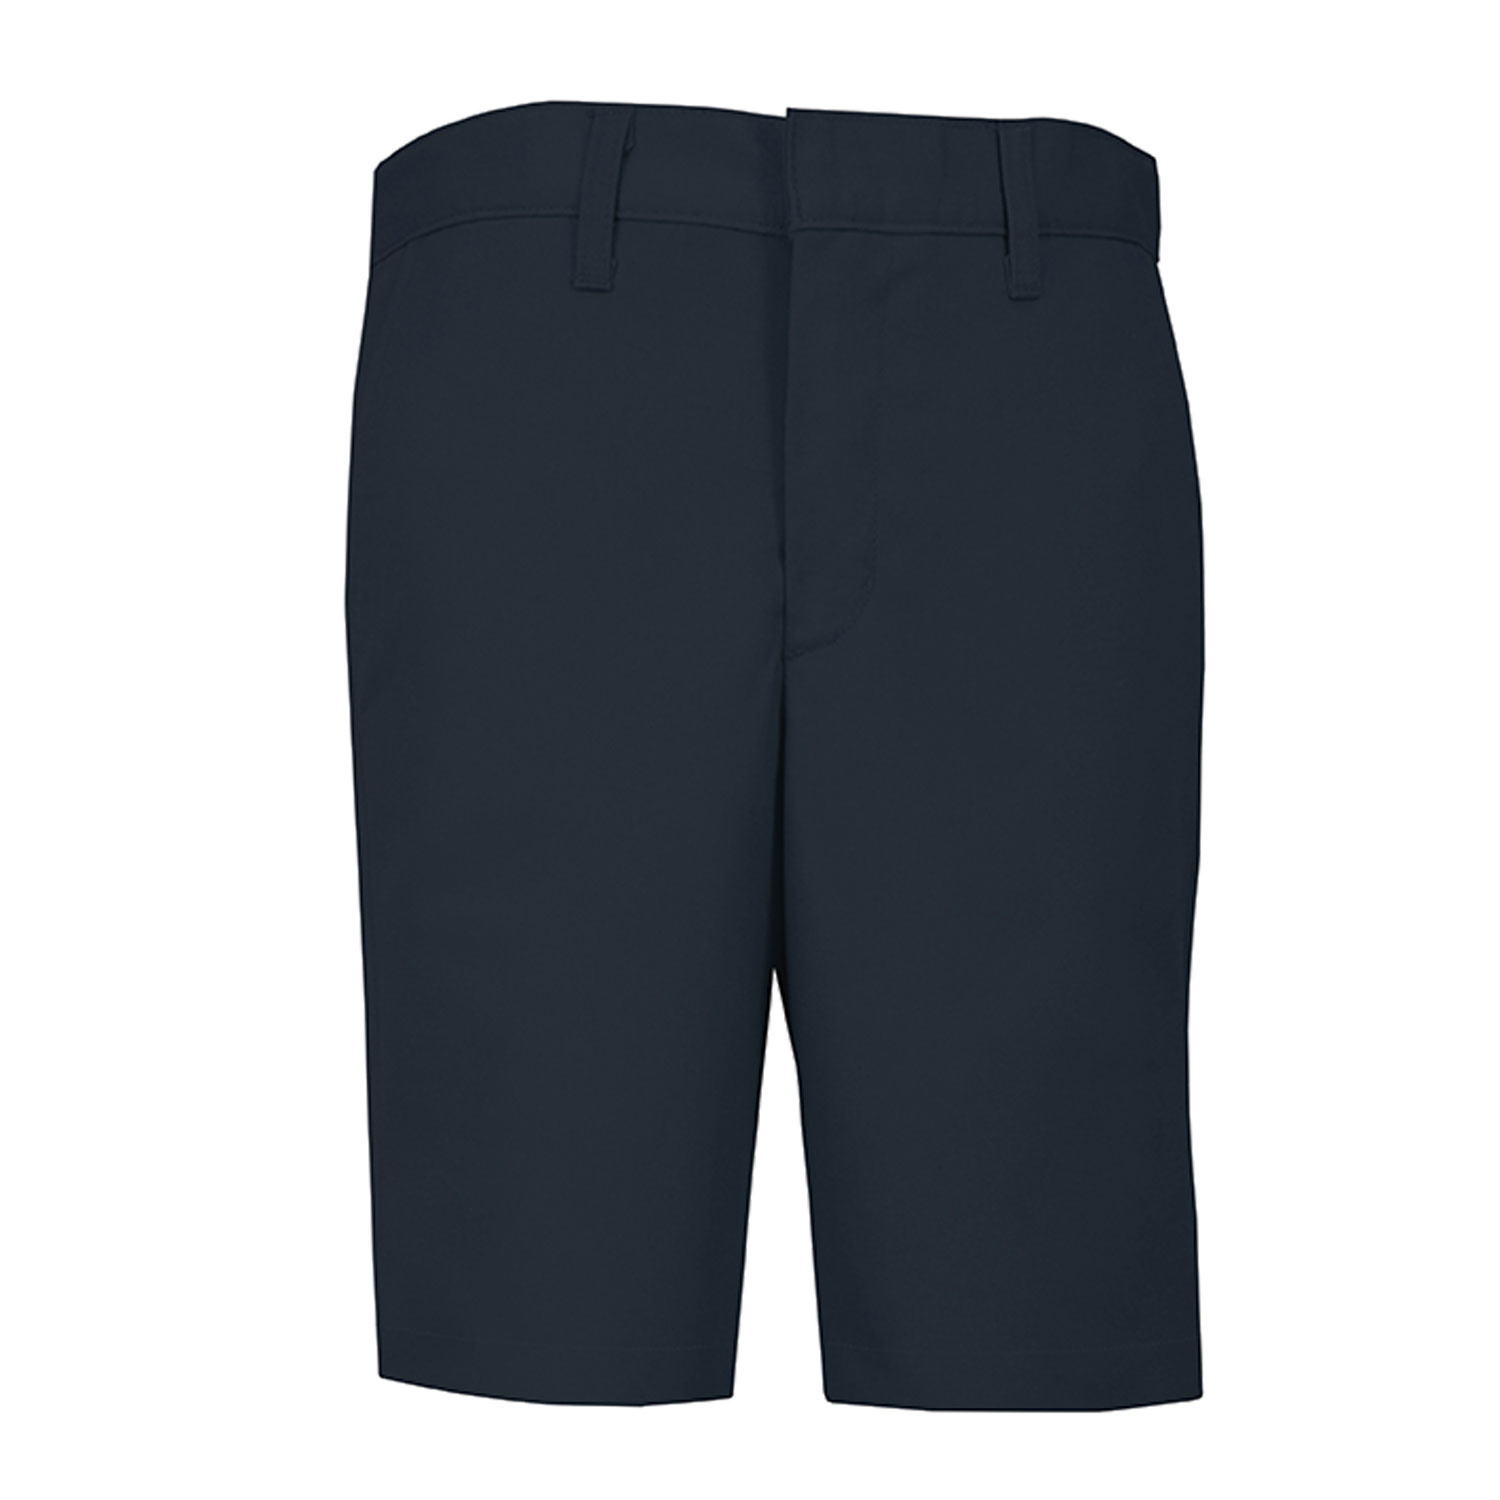 Mens Cotton Flat Front Shorts (1365MN) Navy